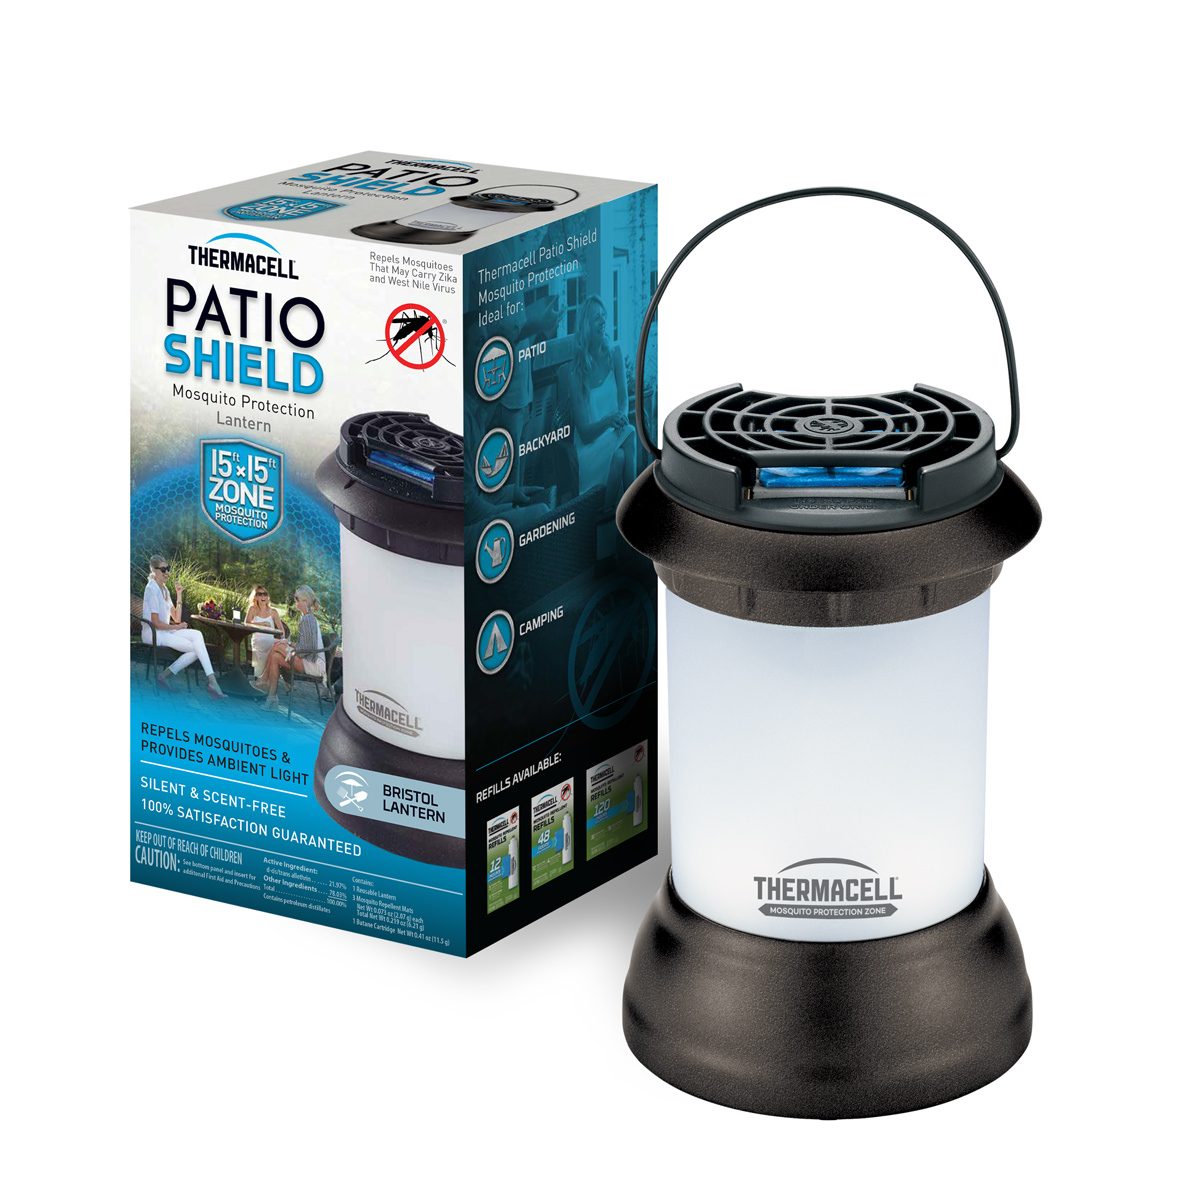 High Quality Thermacell Mosquito Repellent Bristol Lantern, Repellent + Light